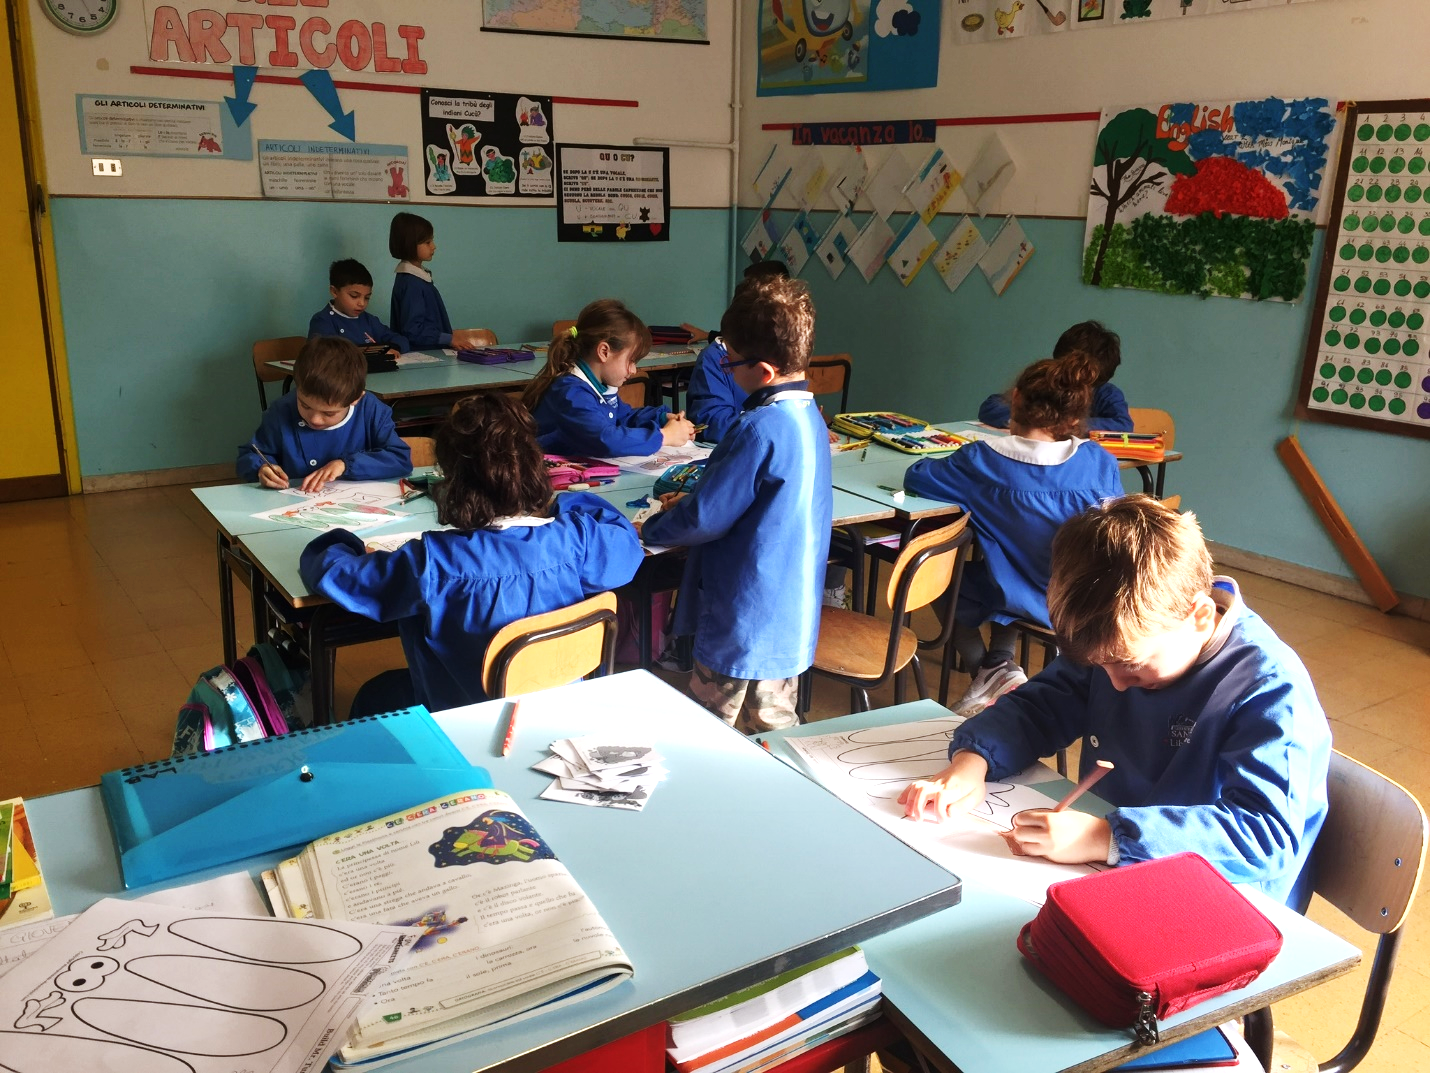 CAPAStudyAbroad_Florence_Fall2016_From Kayla Sides - Volunteering - Elementary School1.png